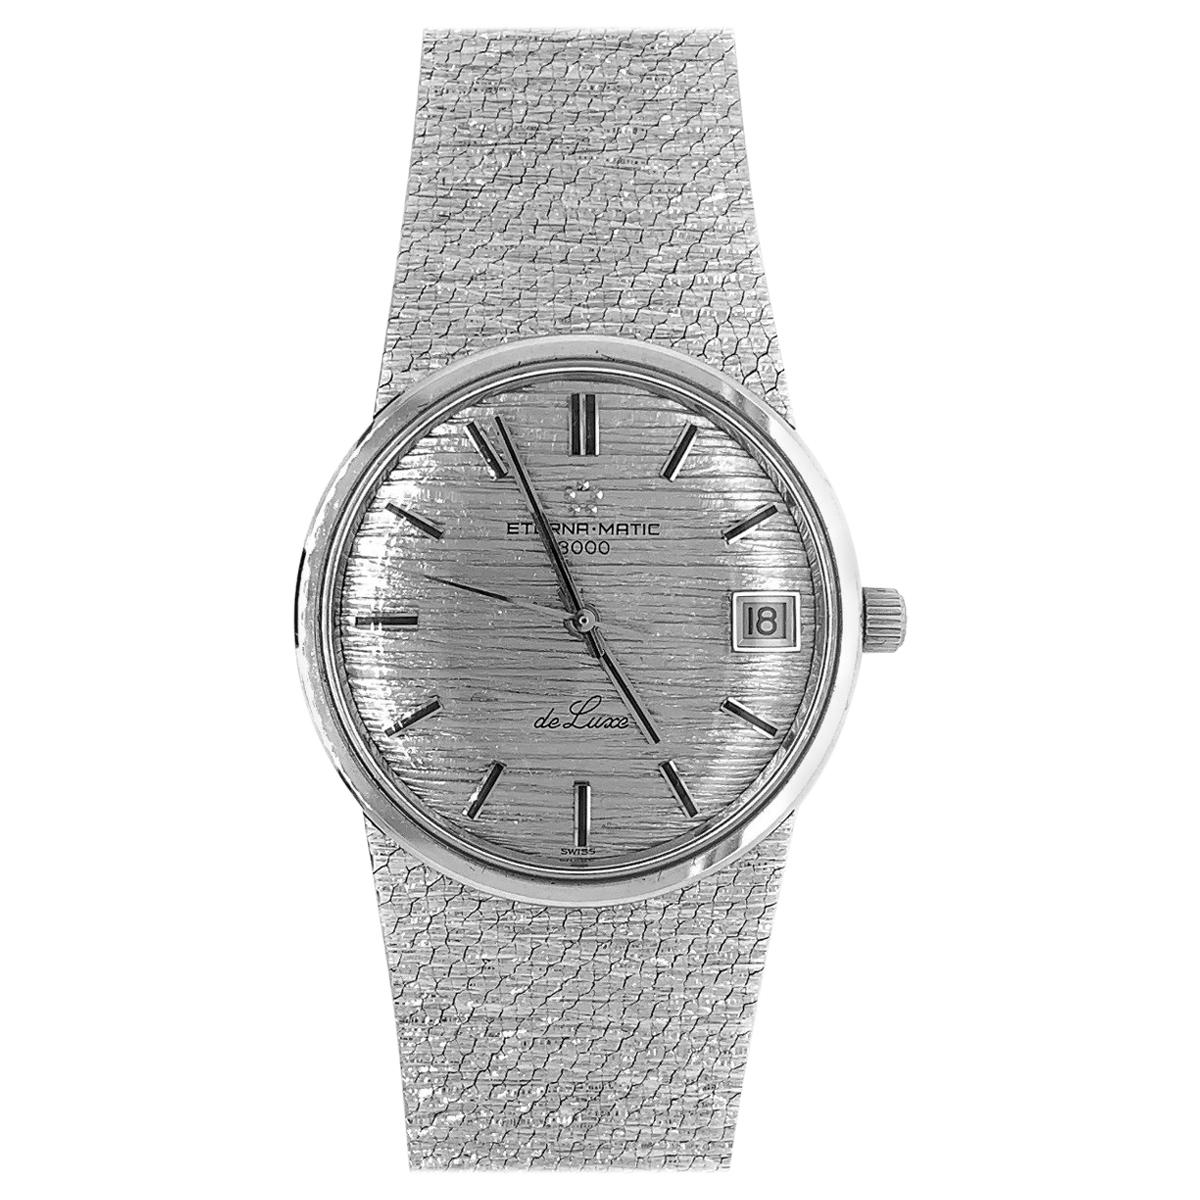 Eterna Matic 3000 18 Karat White Gold Wristwatch